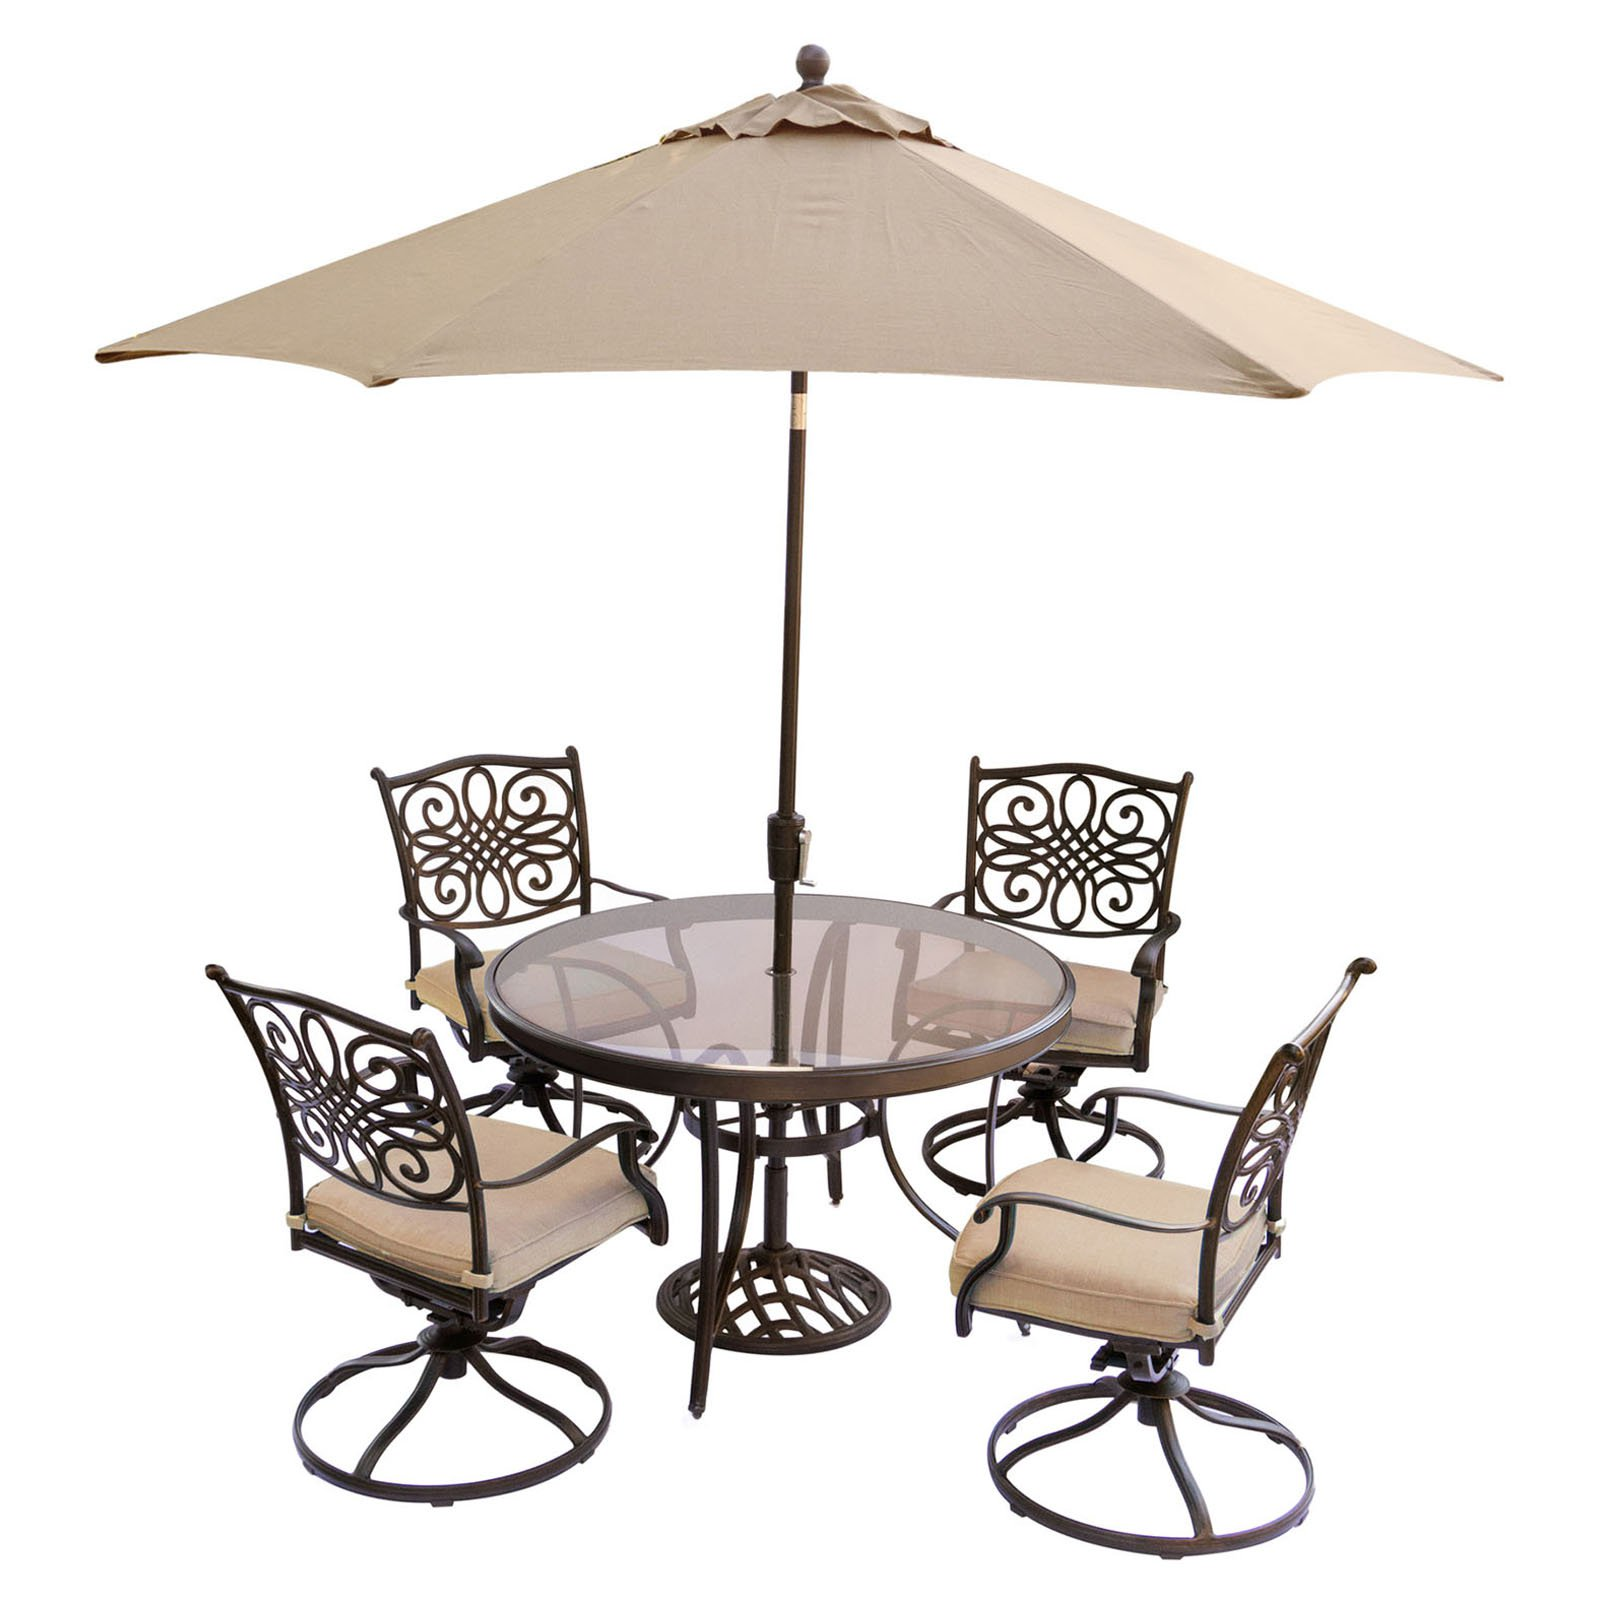 Hanover Outdoor Traditions 5-Piece Glass-Top Dining Set with Swivel Rockers